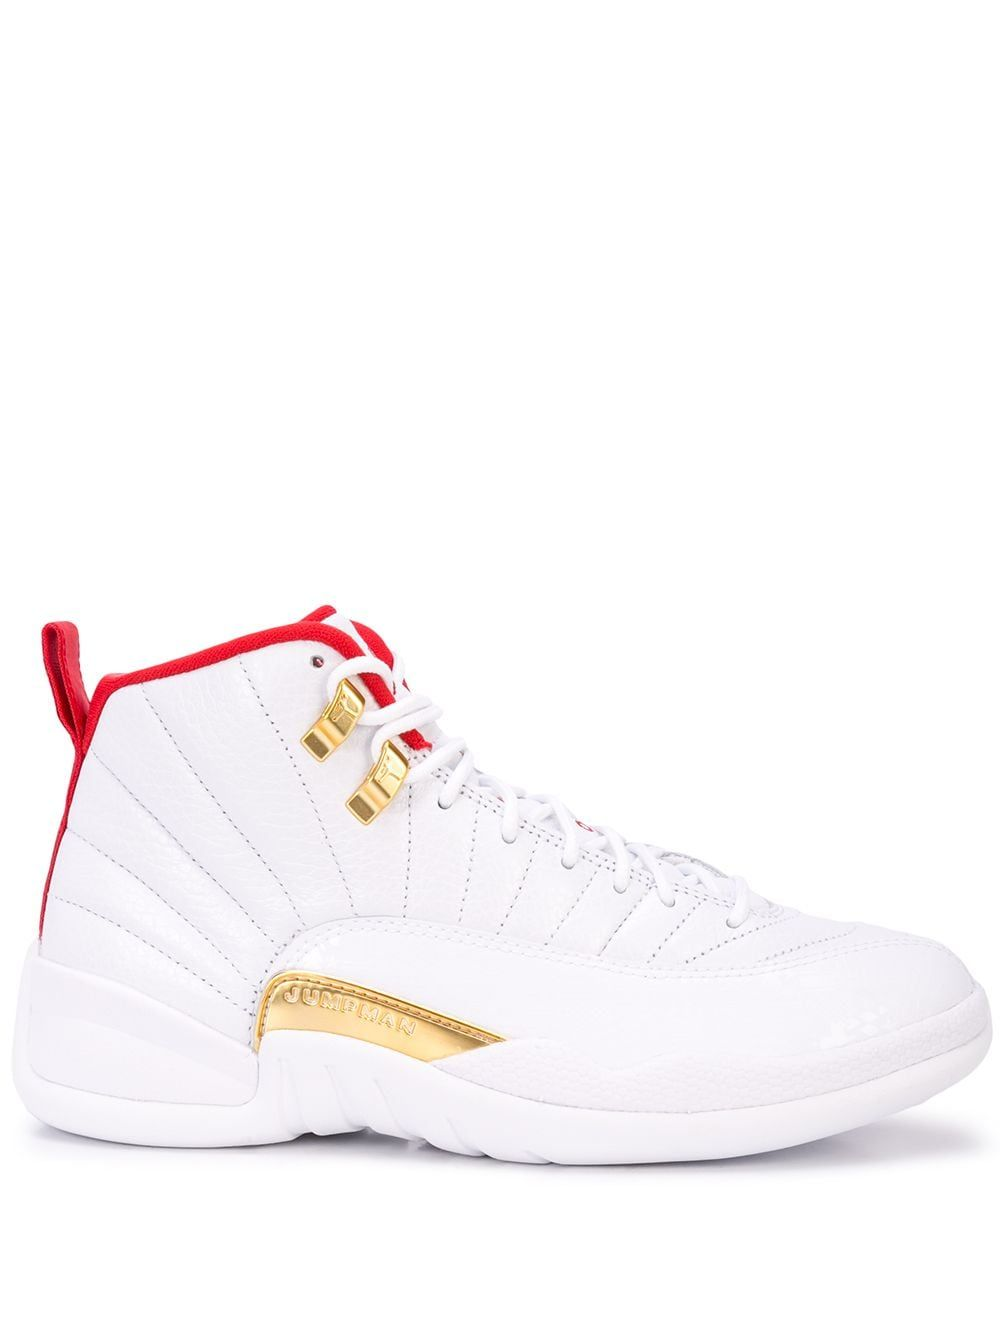 White and red calf leather Air Jordan 12 Fiba from Nike featuring a round toe, a high ankle, a lace fastening, a logo patch at the tongue, a side embossed logo stamp and gold-tone hardware.